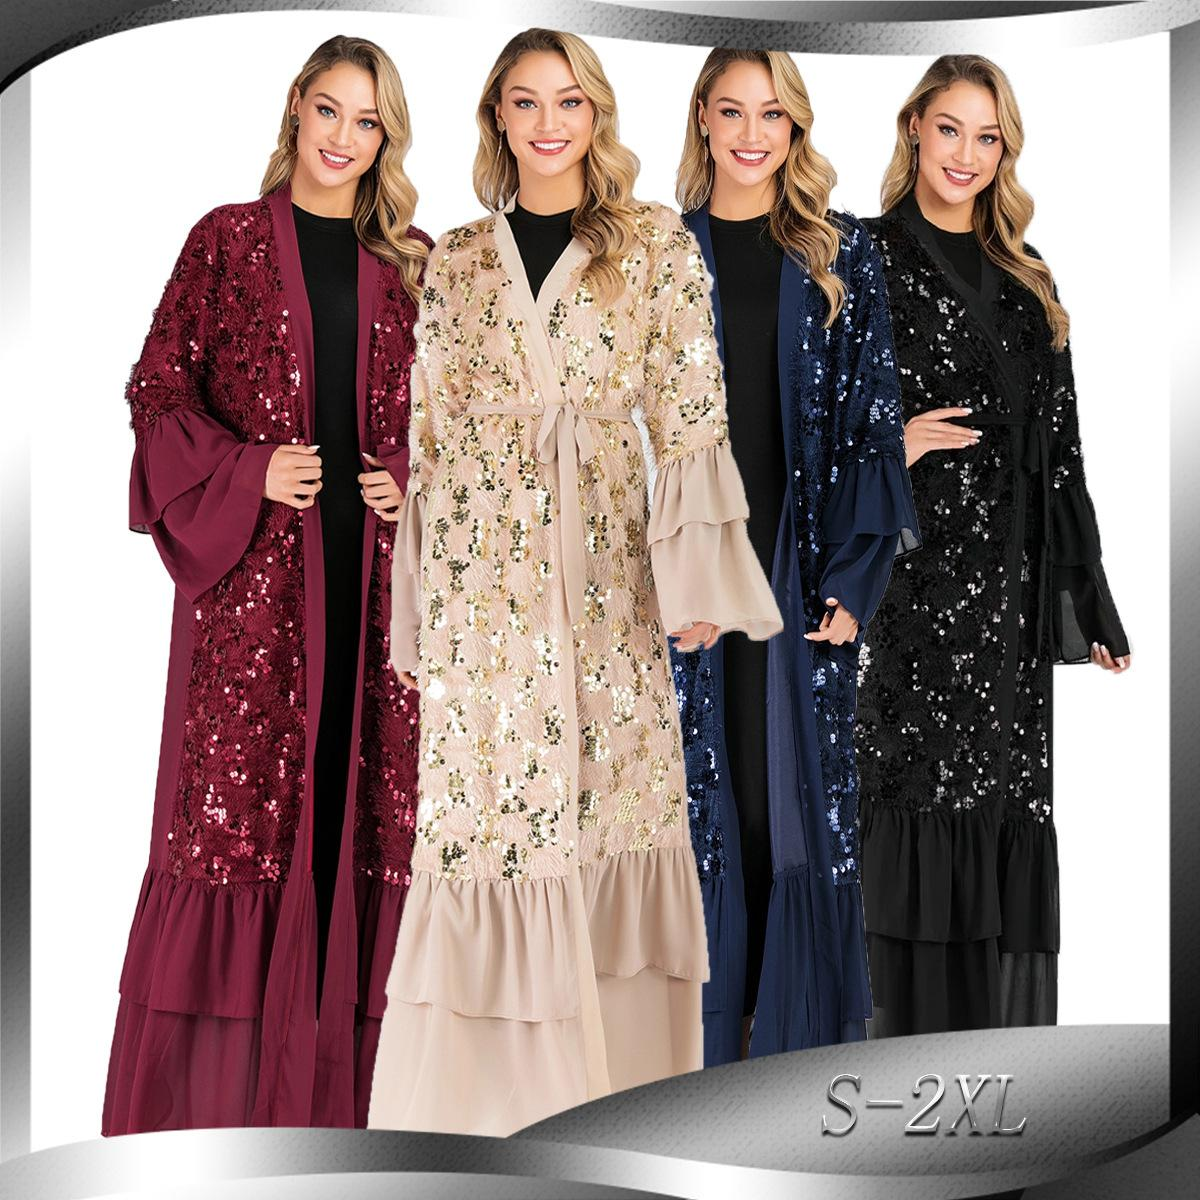 CM1737 sequins robes chiffon trumpet sleeves Muslim cardigan dress Elegant New Fashion Robes for Dubai Women